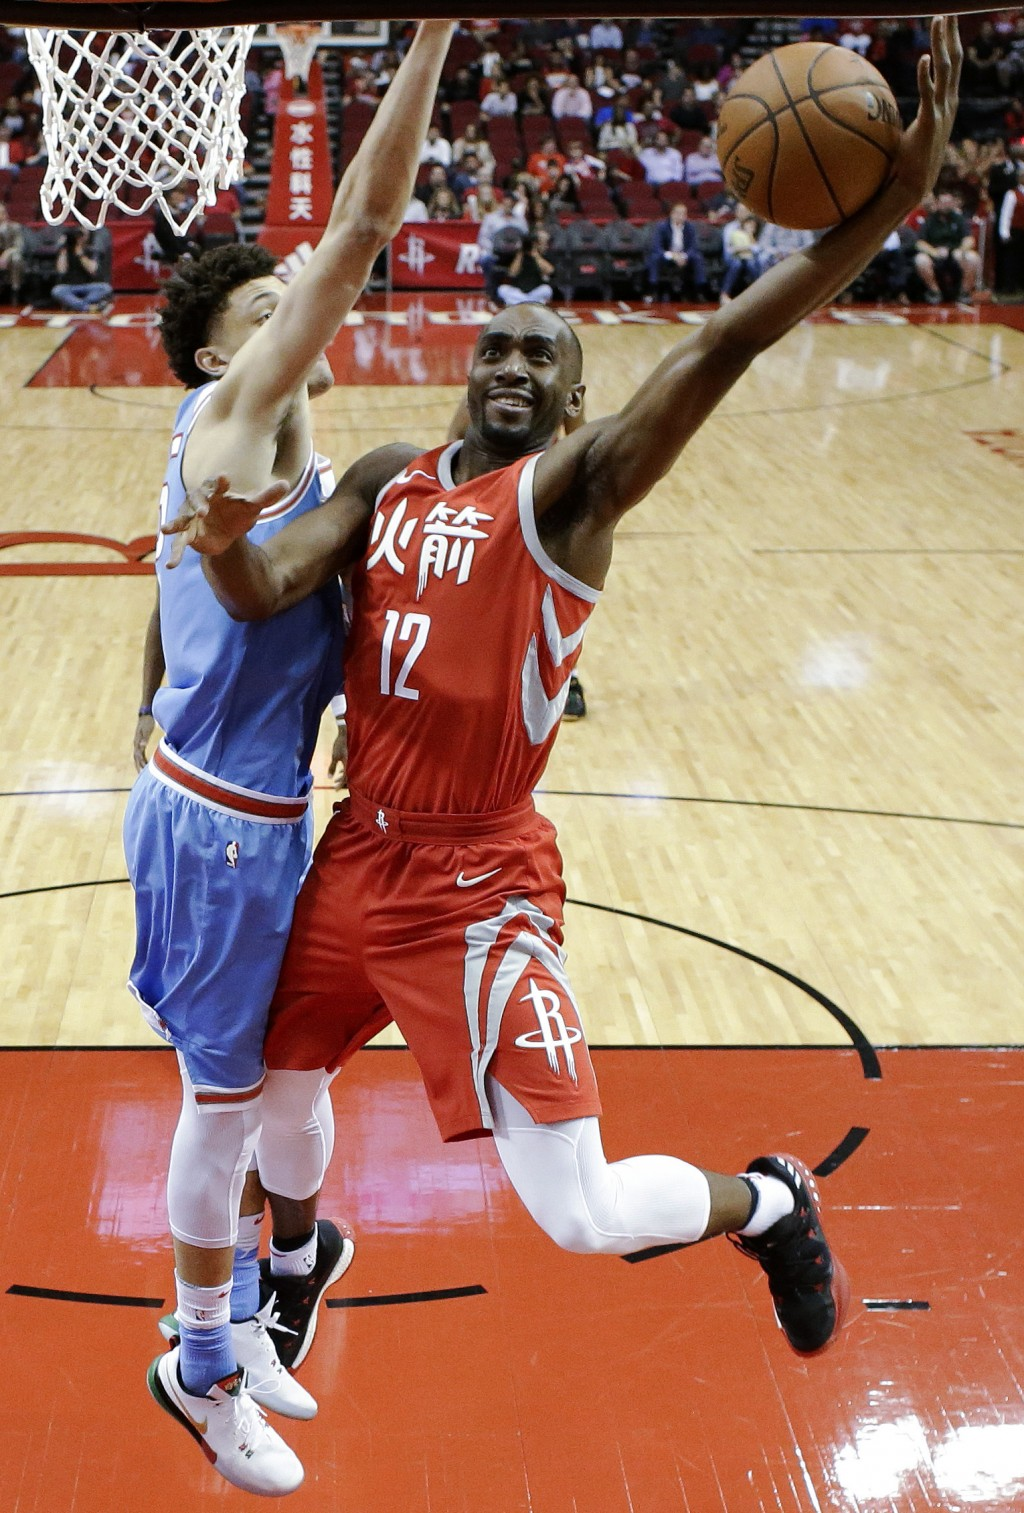 Houston Rockets forward Luc Mbah a Moute drives to the basket as Sacramento Kings forward Justin Jackson defends during the first half of an NBA baske